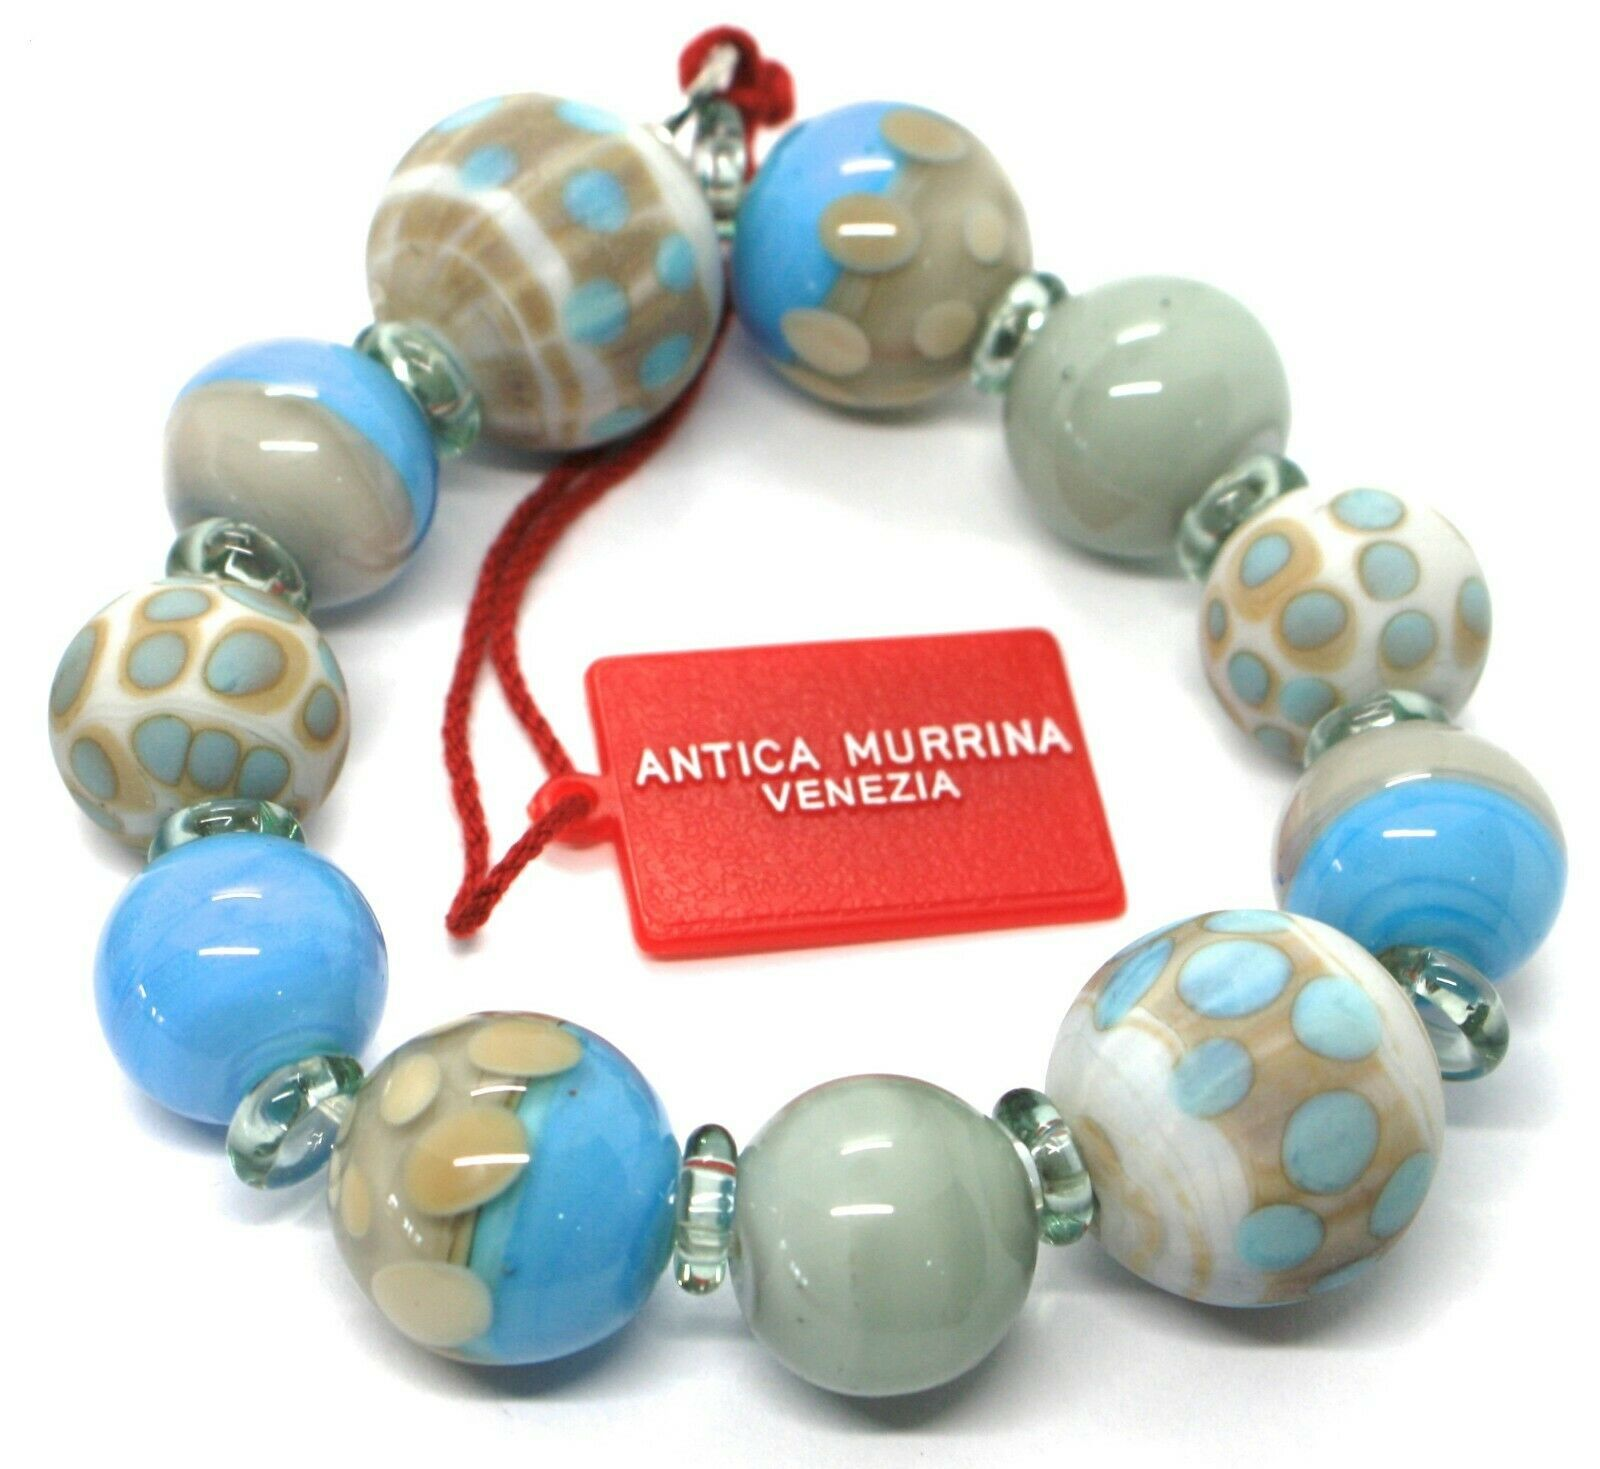 Bracelet Antica Murrina Venezia, BR717A07 Azure Gray, Sphere Polka dot, Speckled